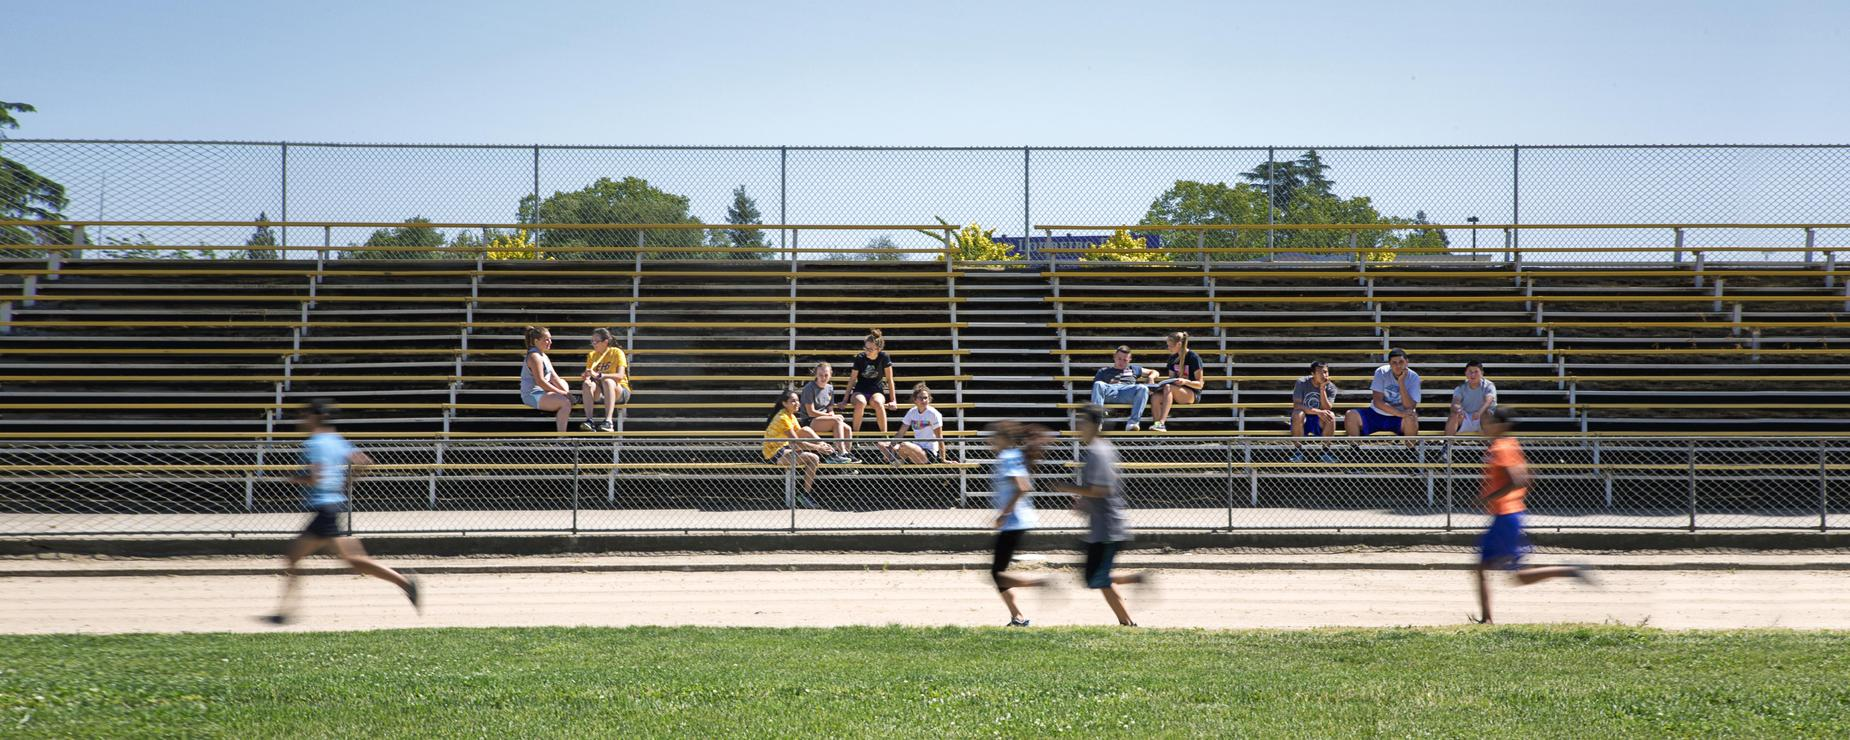 Students running around track while students watch from stands